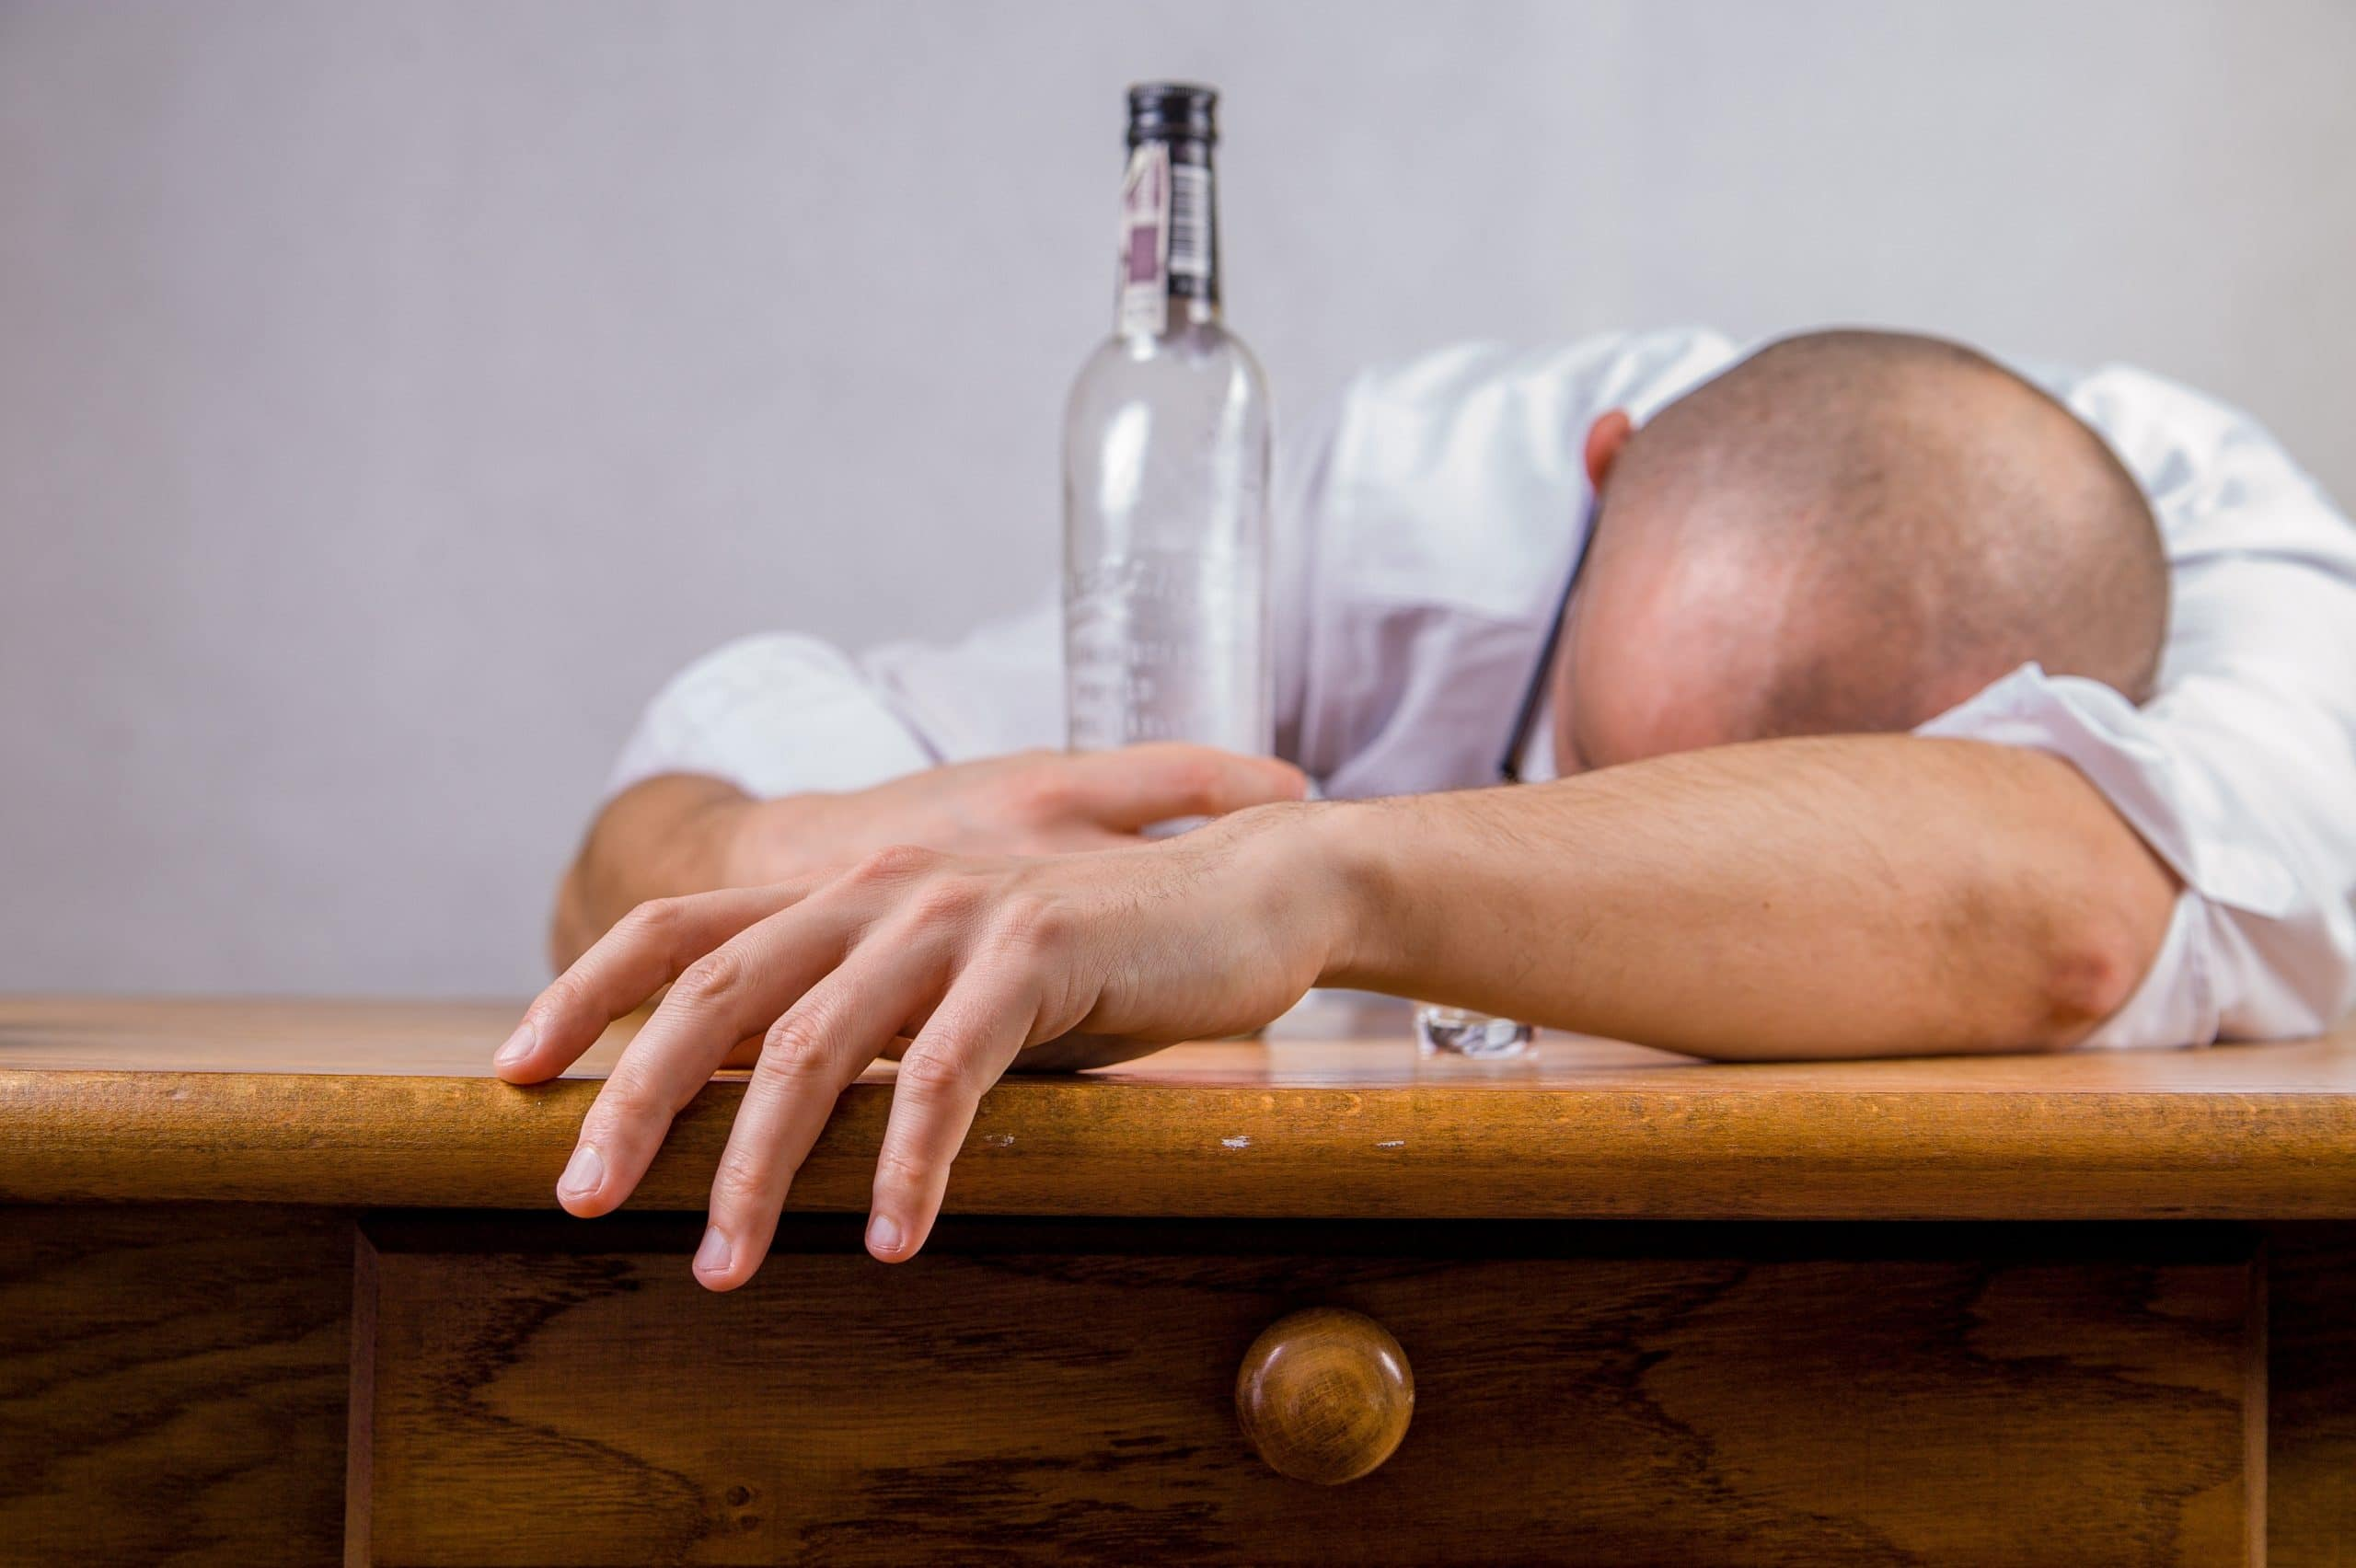 alcoholism and binge drinking